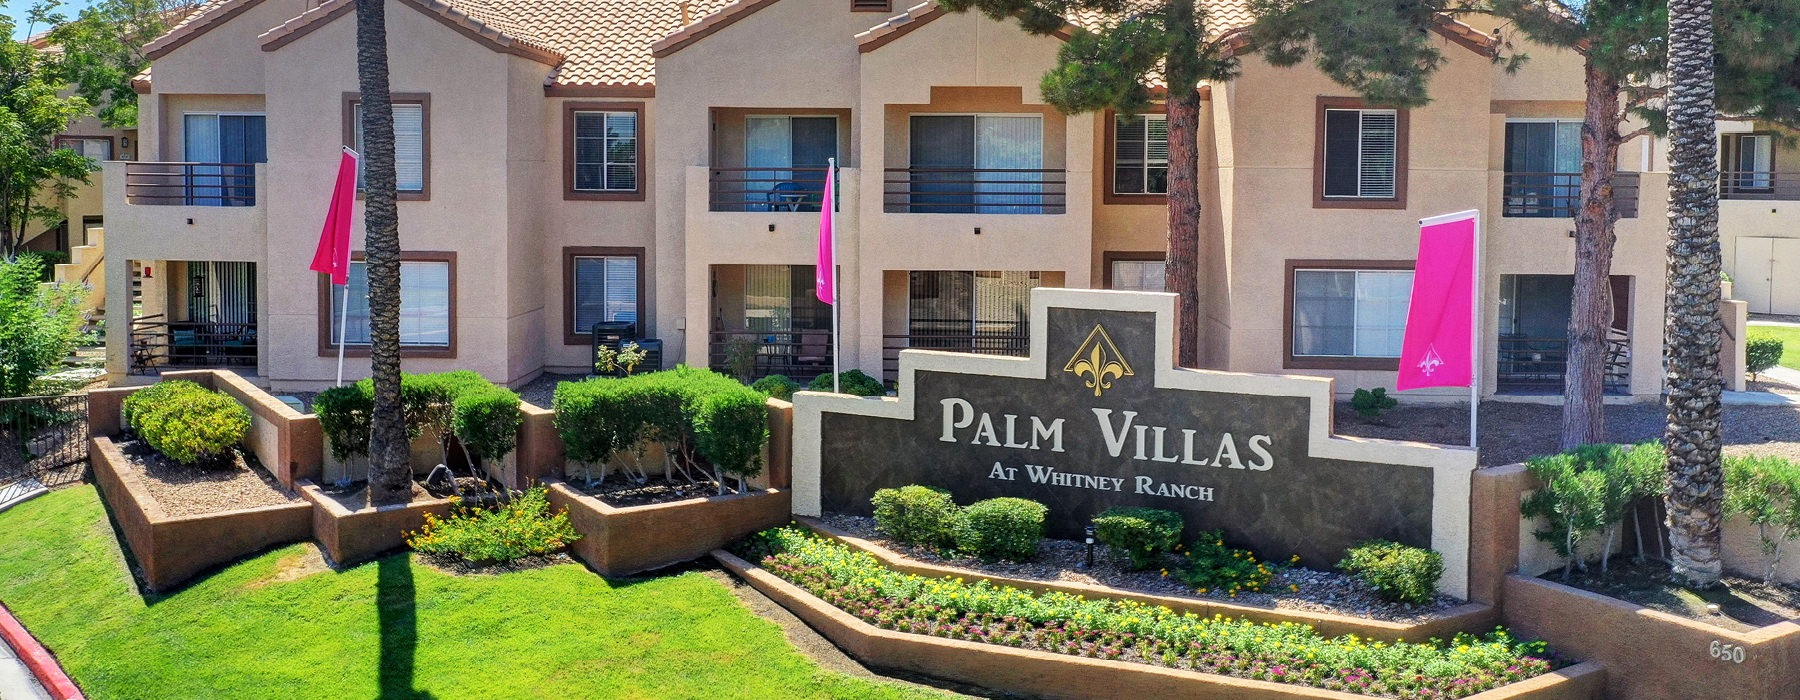 landscaped palm villas entrance with large stone sign and flags